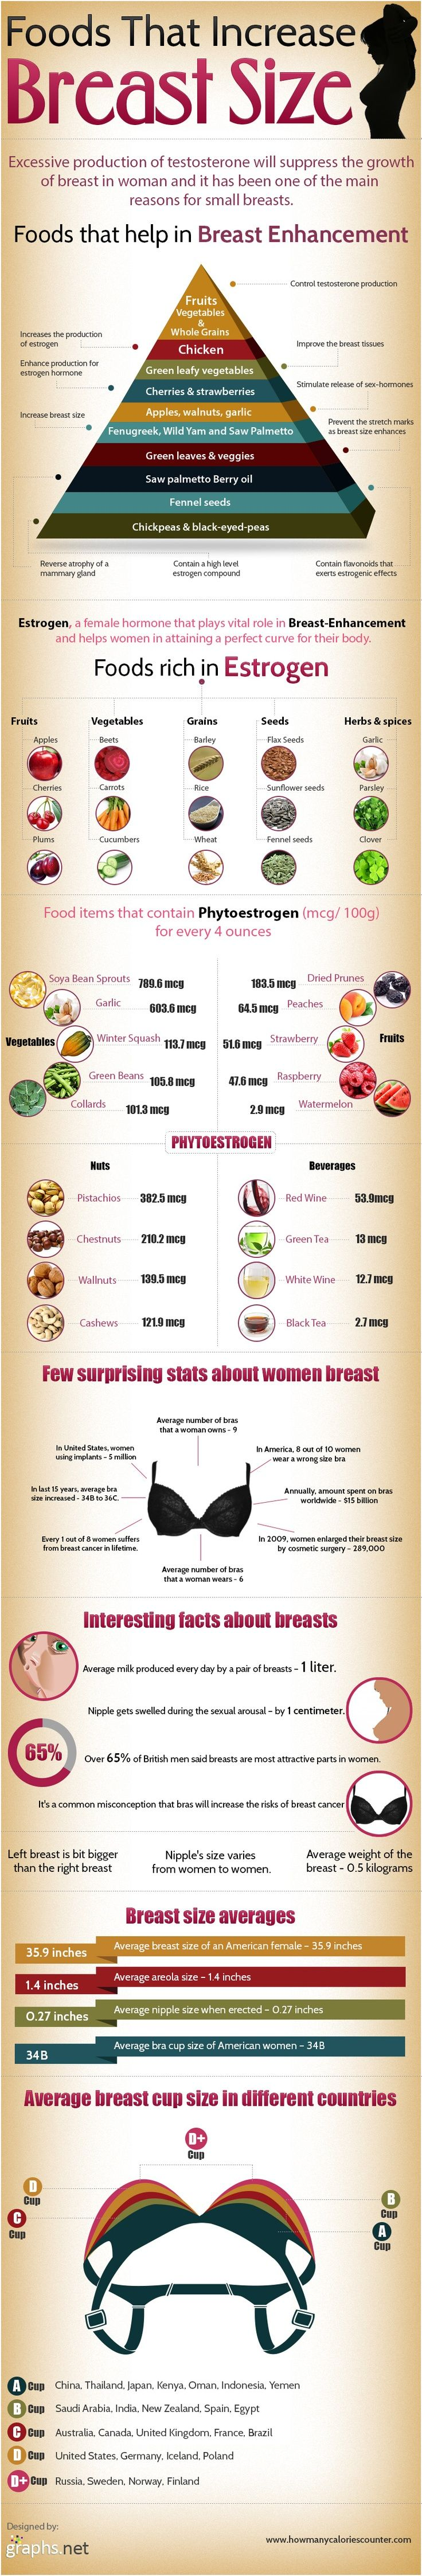 40 Best Tips To Make Your Breast Grow Bigger Images On -3229